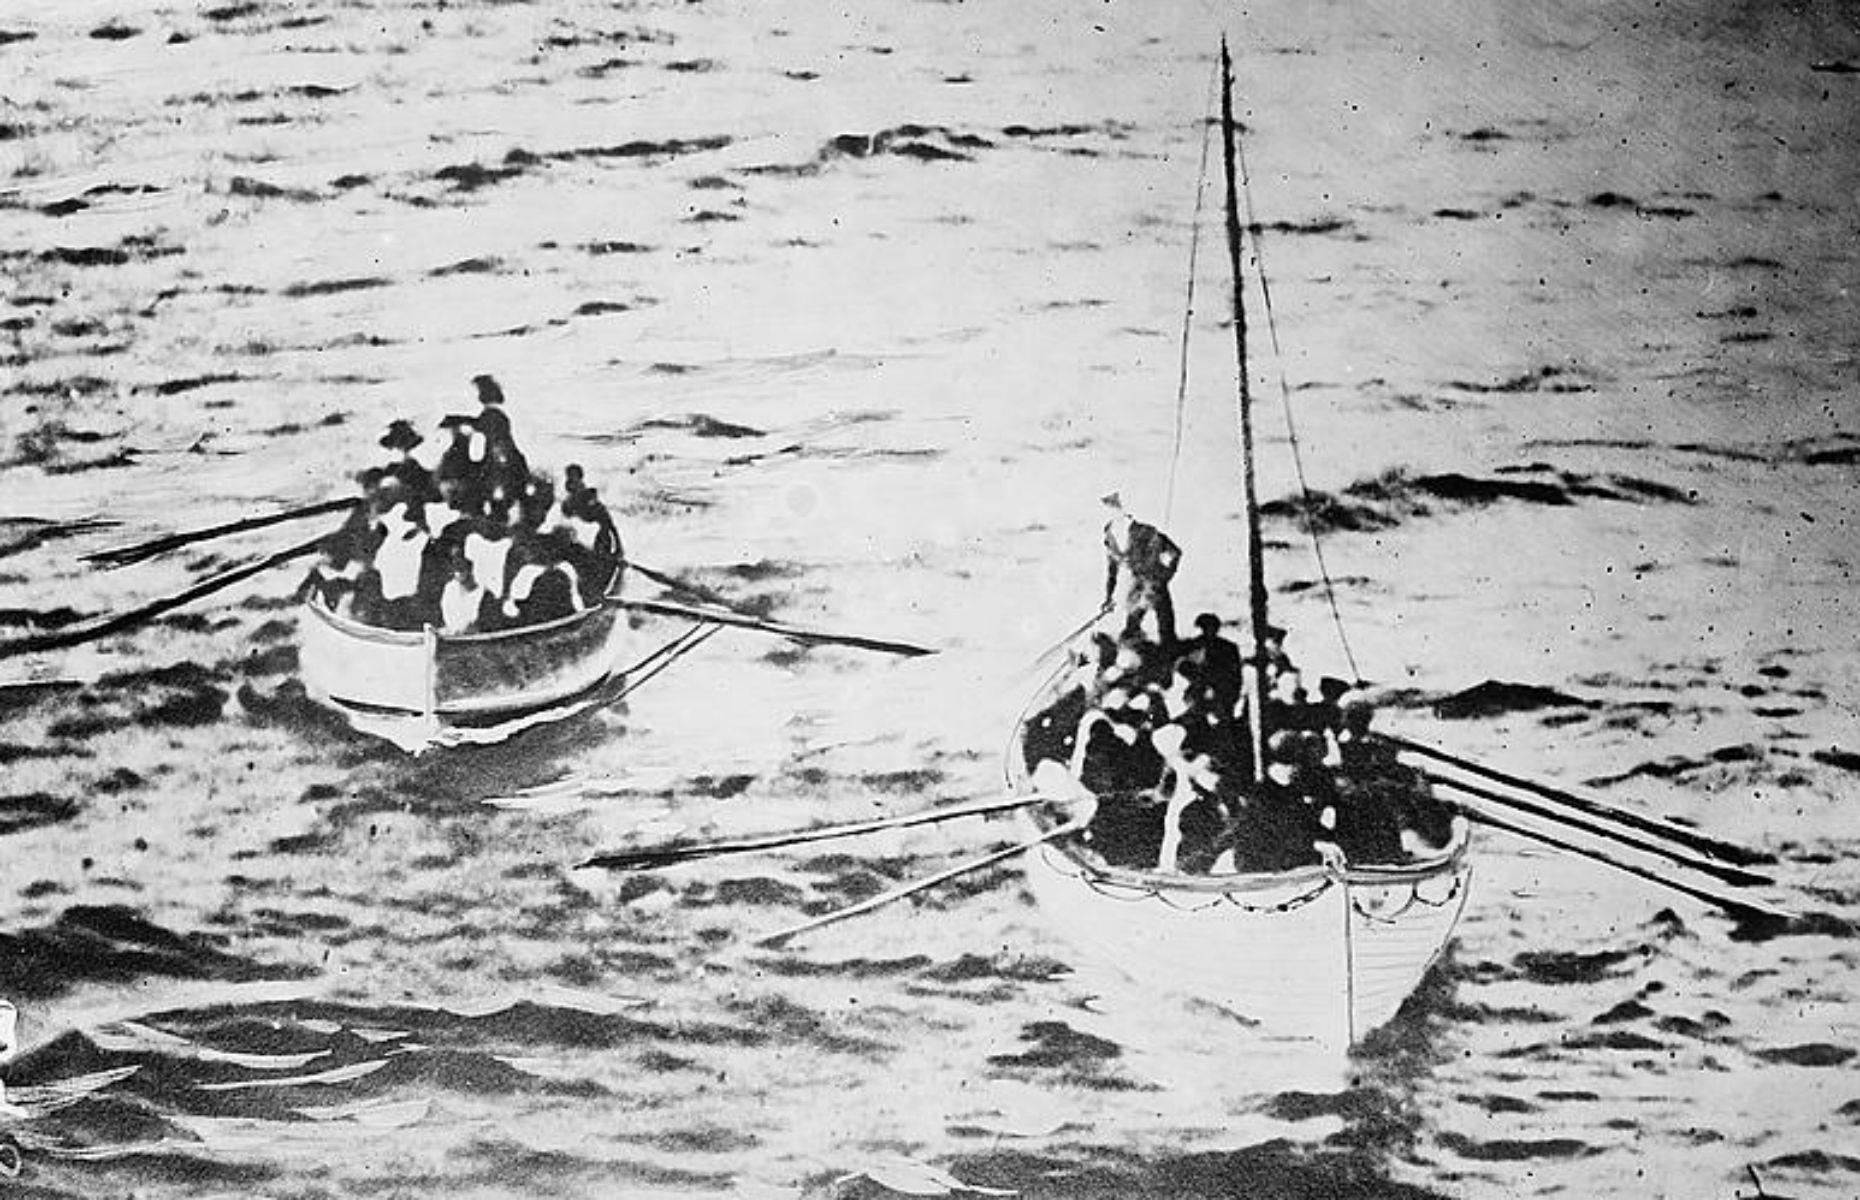 Slide 32 of 46: There were just 20 lifeboats onboard, enough for around 1,700 crew and passengers. Priority was given to women and children, with a much greater percentage of first-class passengers saved than those in steerage.